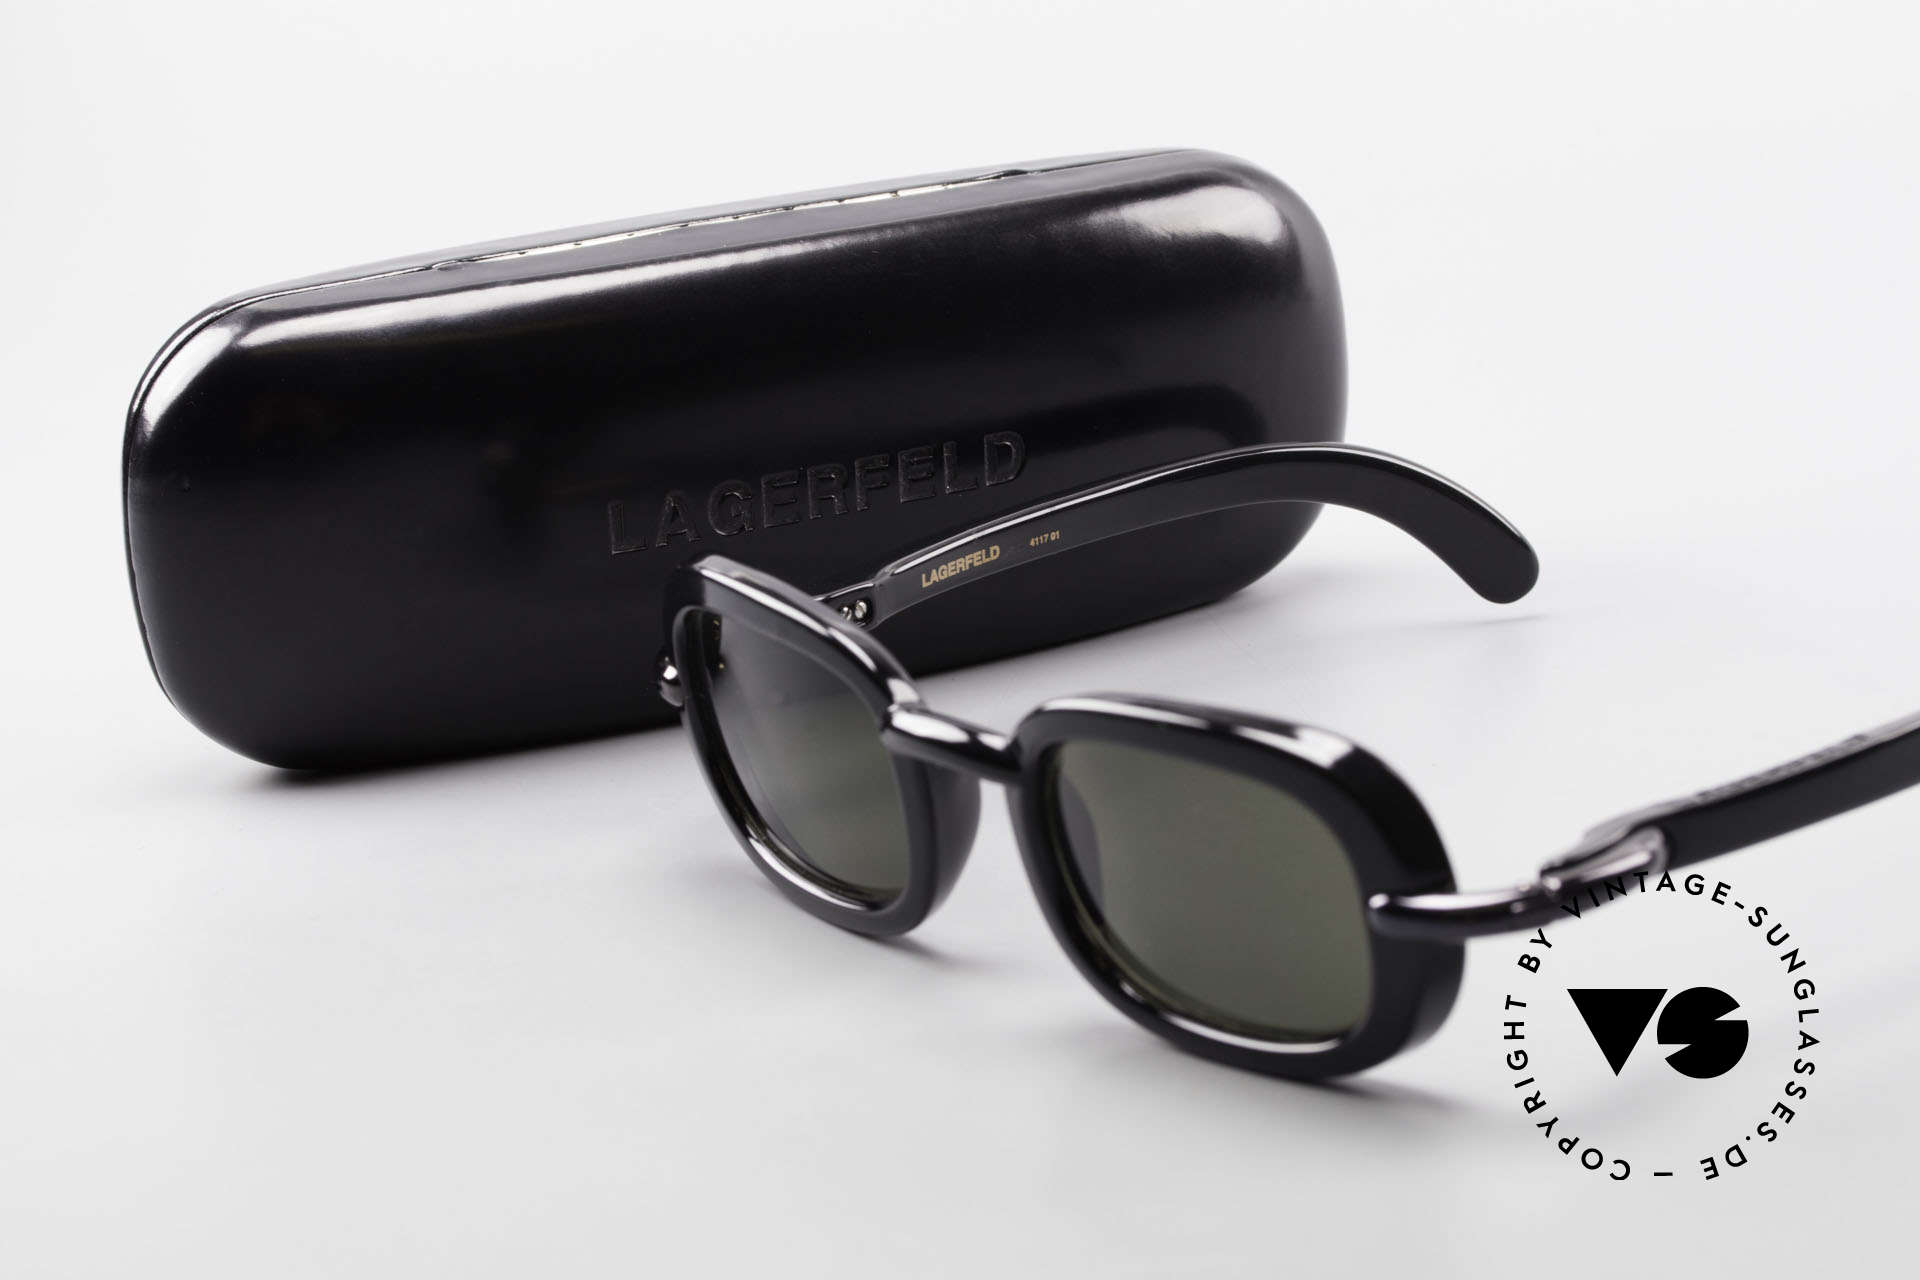 Karl Lagerfeld 4117 Rare 90's Ladies Sunglasses, Size: large, Made for Women